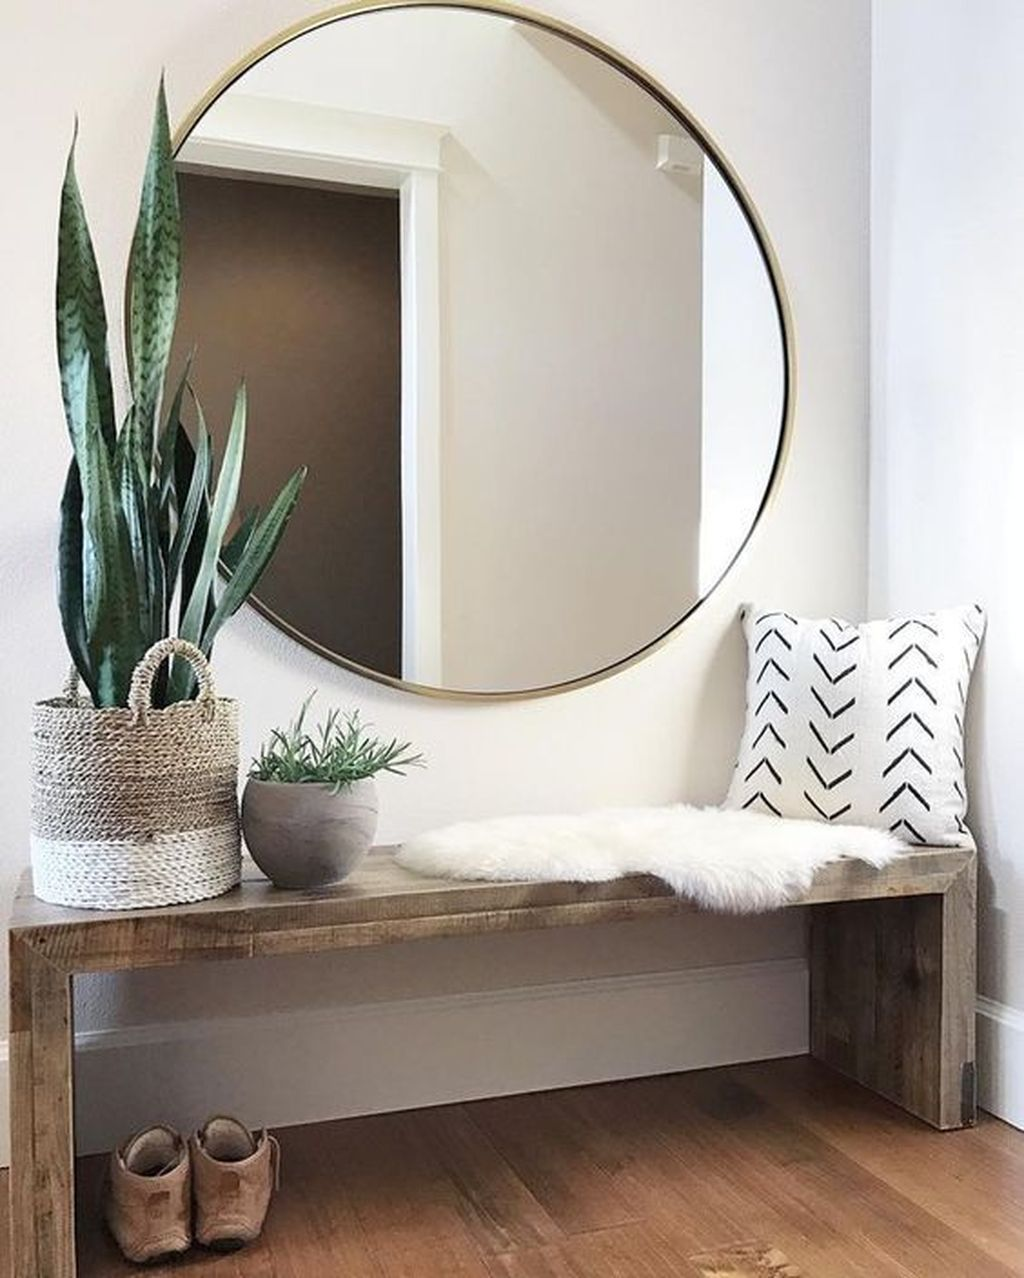 Want To Redecorate Your Living Room? Try These Simple